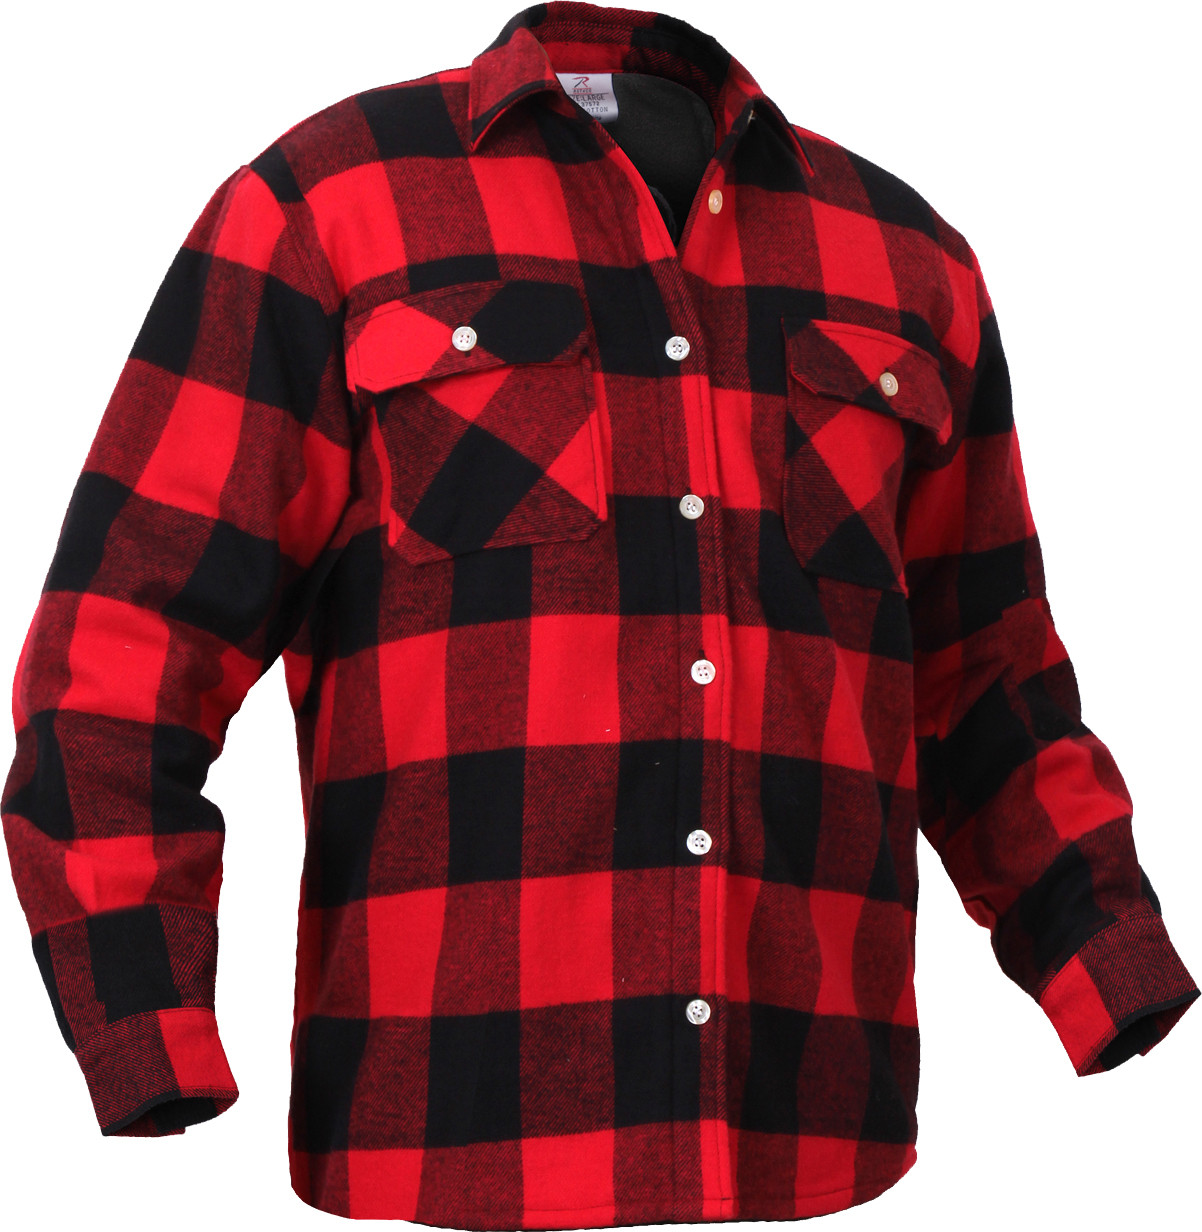 More Views. Red Extra Heavyweight Brawny Buffalo Plaid Fleece Lined Flannel  Shirt ... bb26741688f